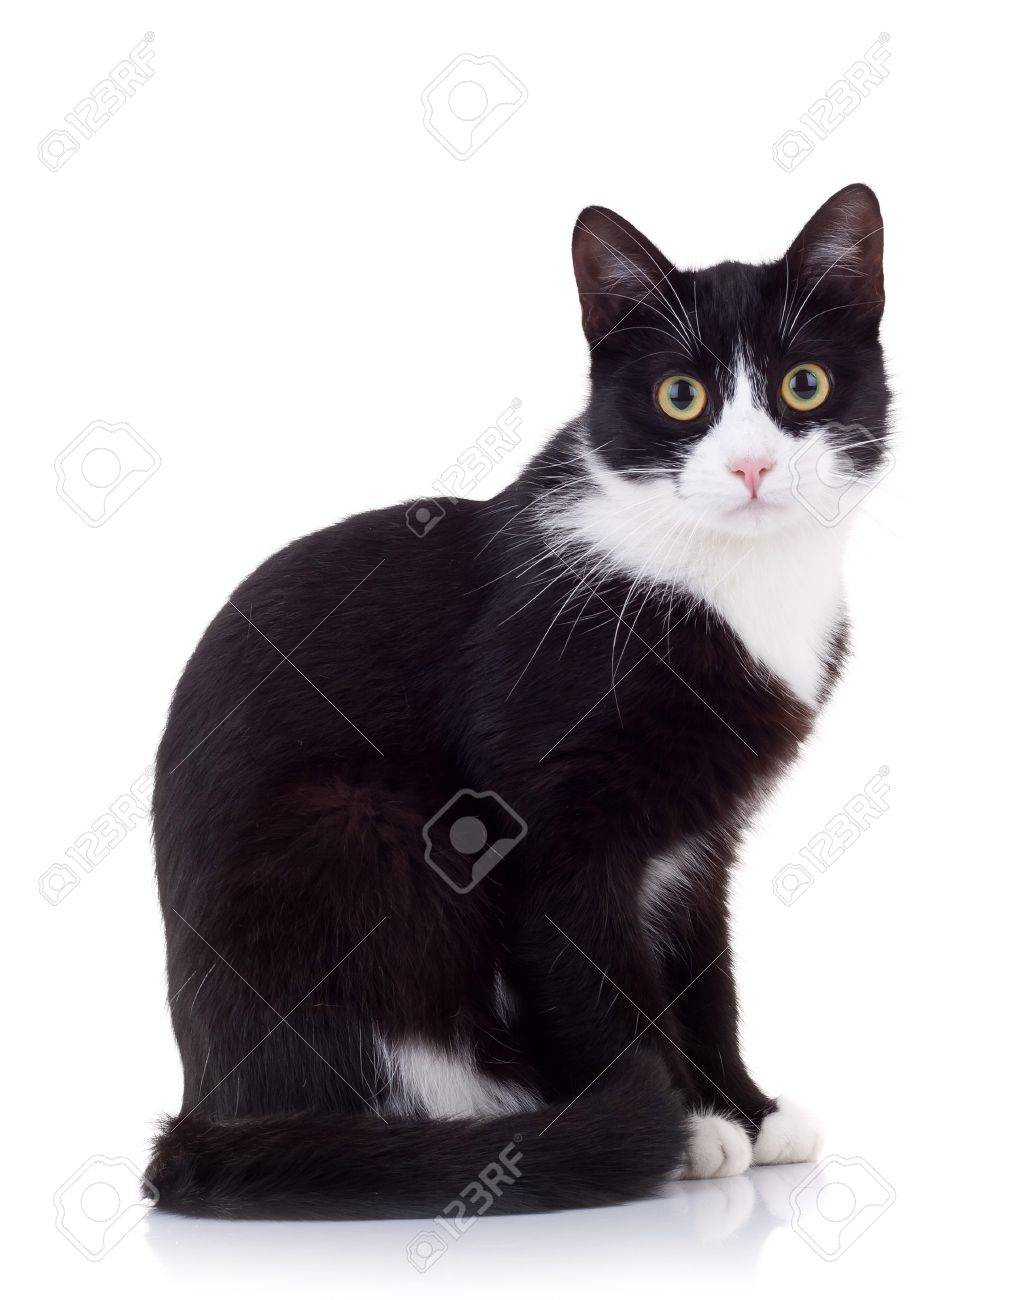 seated cute black and white cat  looking at the camera Stock Photo - 8043207